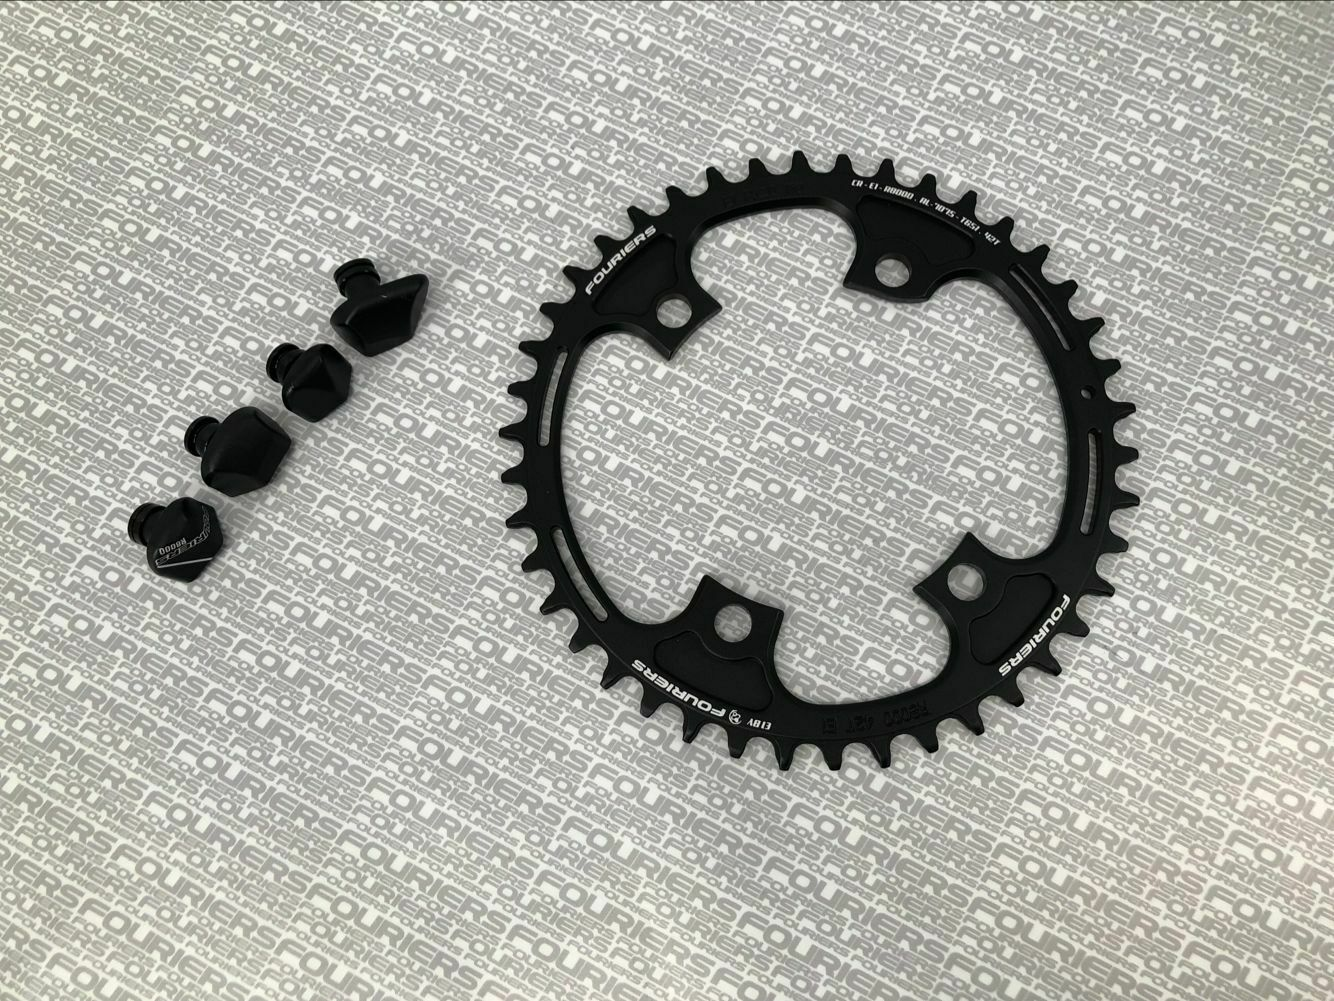 FOURIERS Road Bike NW Chainring Bicycle Shimano Ultegra R8000 42T 46T Chainwheel